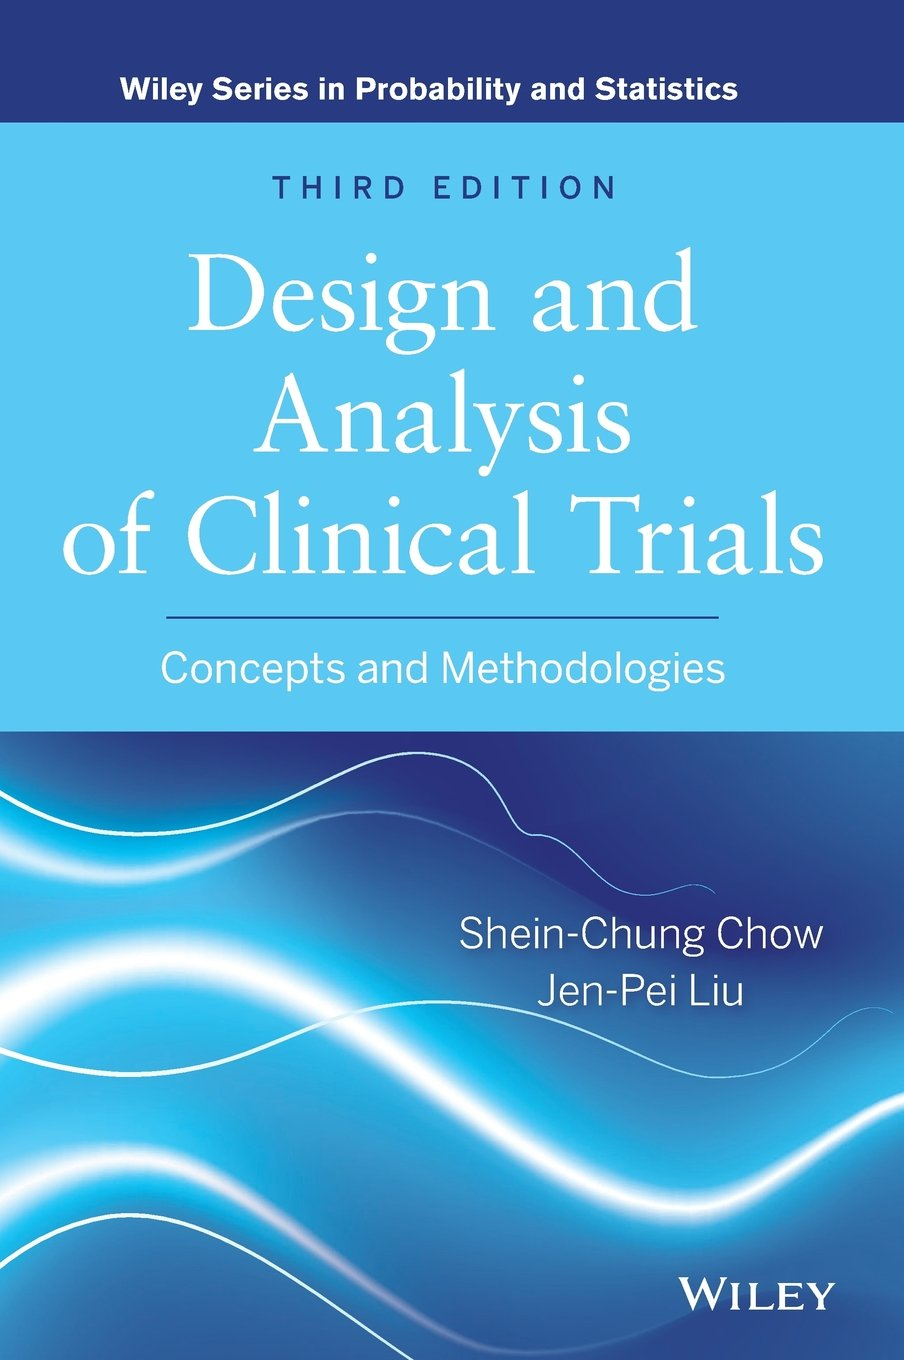 Image OfDesign And Analysis Of Clinical Trials: Concepts And Methodologies